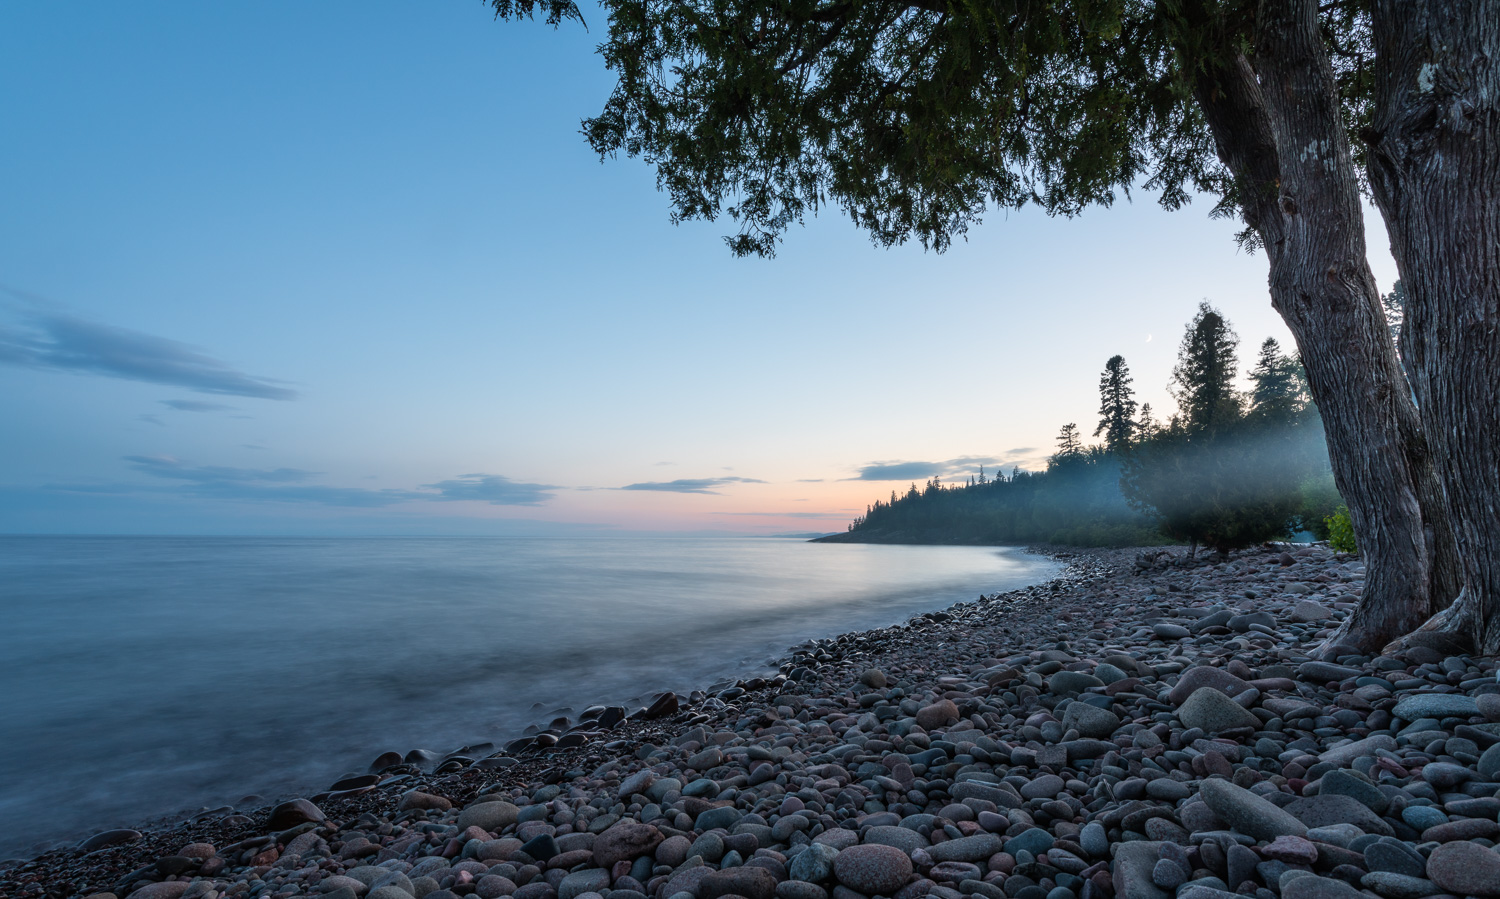 Sunset on the North Shore - Grand Marais, Minnesota